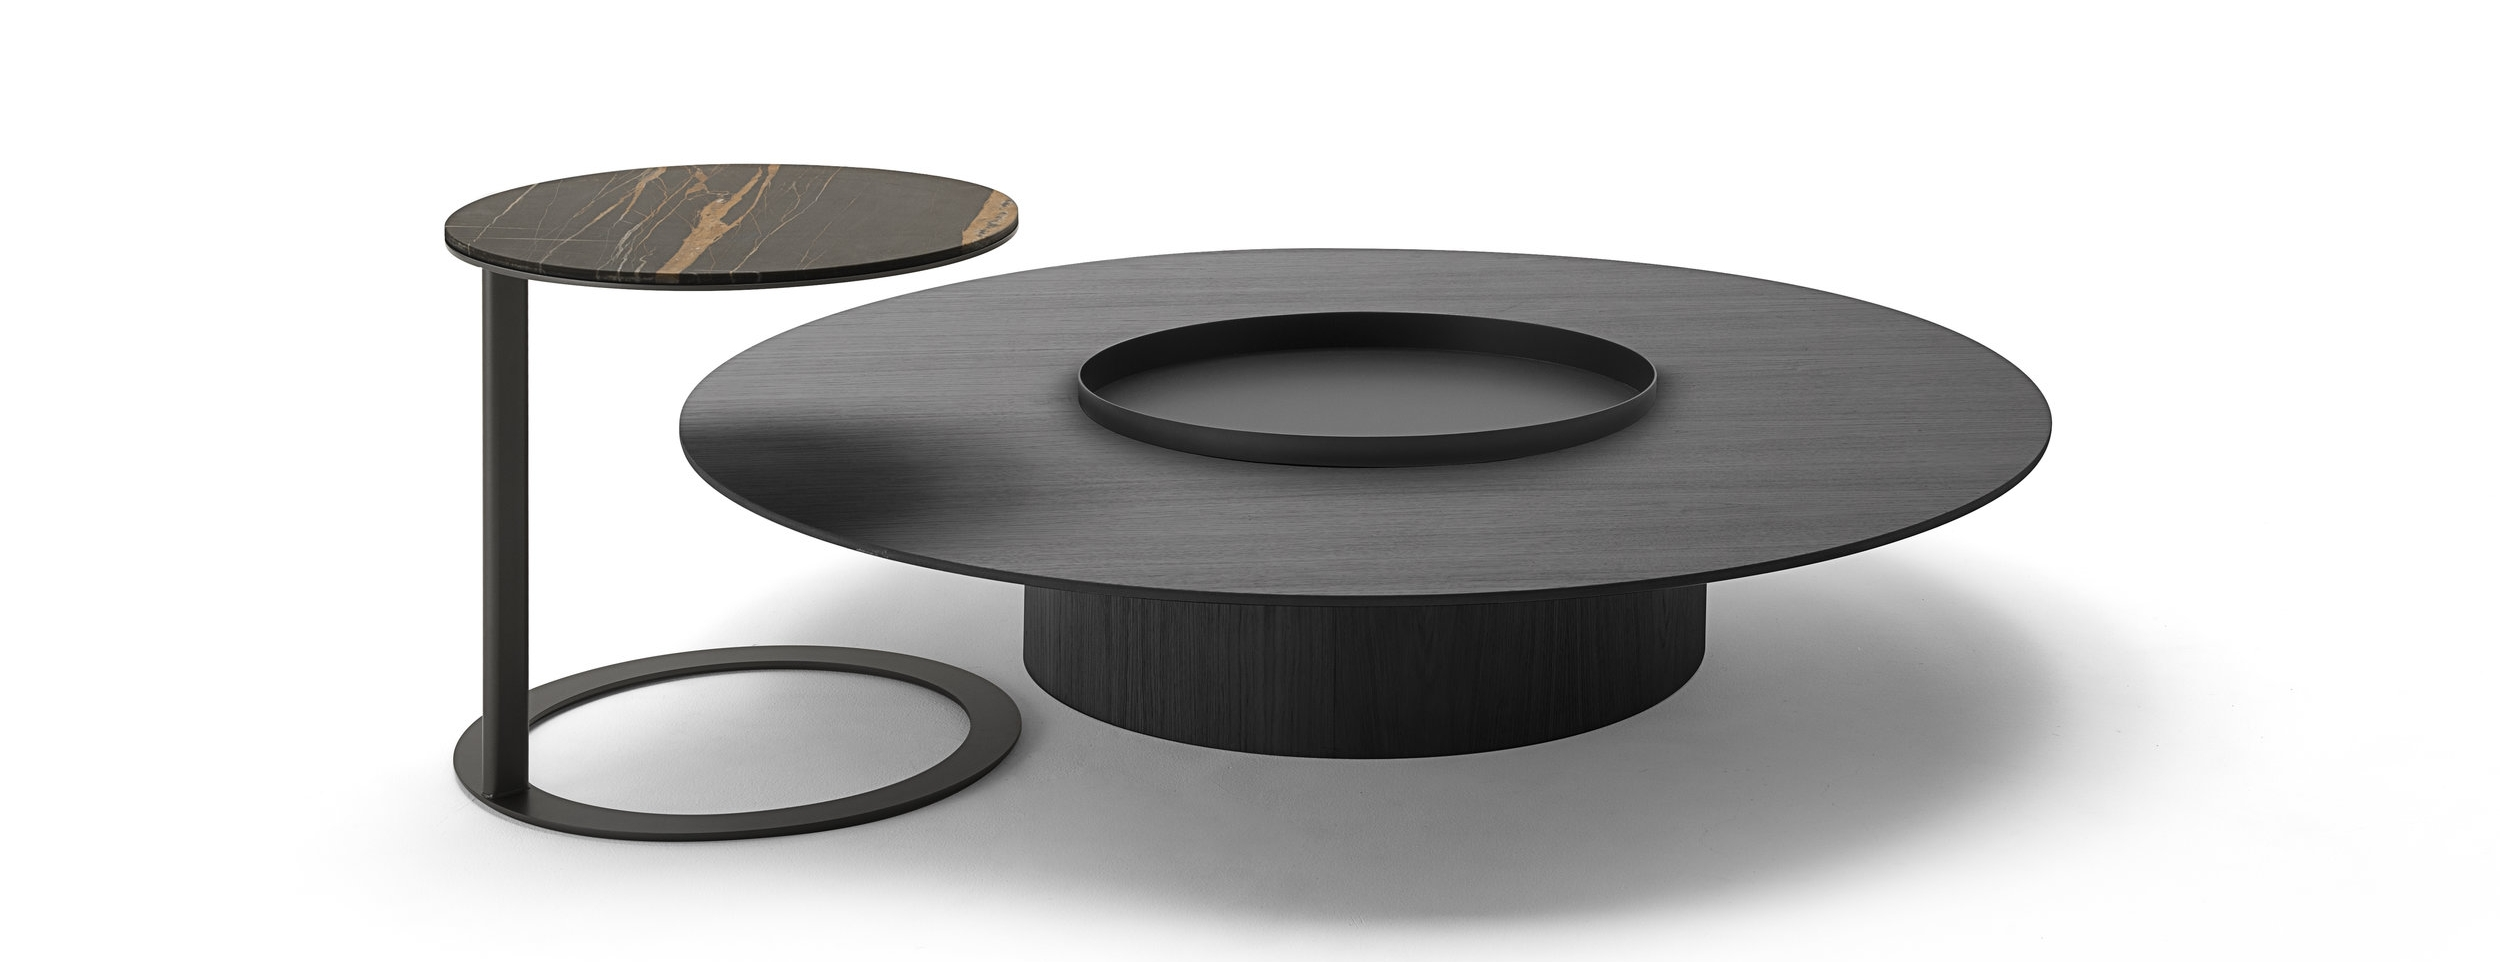 Tethys tables by Oscar and Gabriele Buratti for Living Divani.